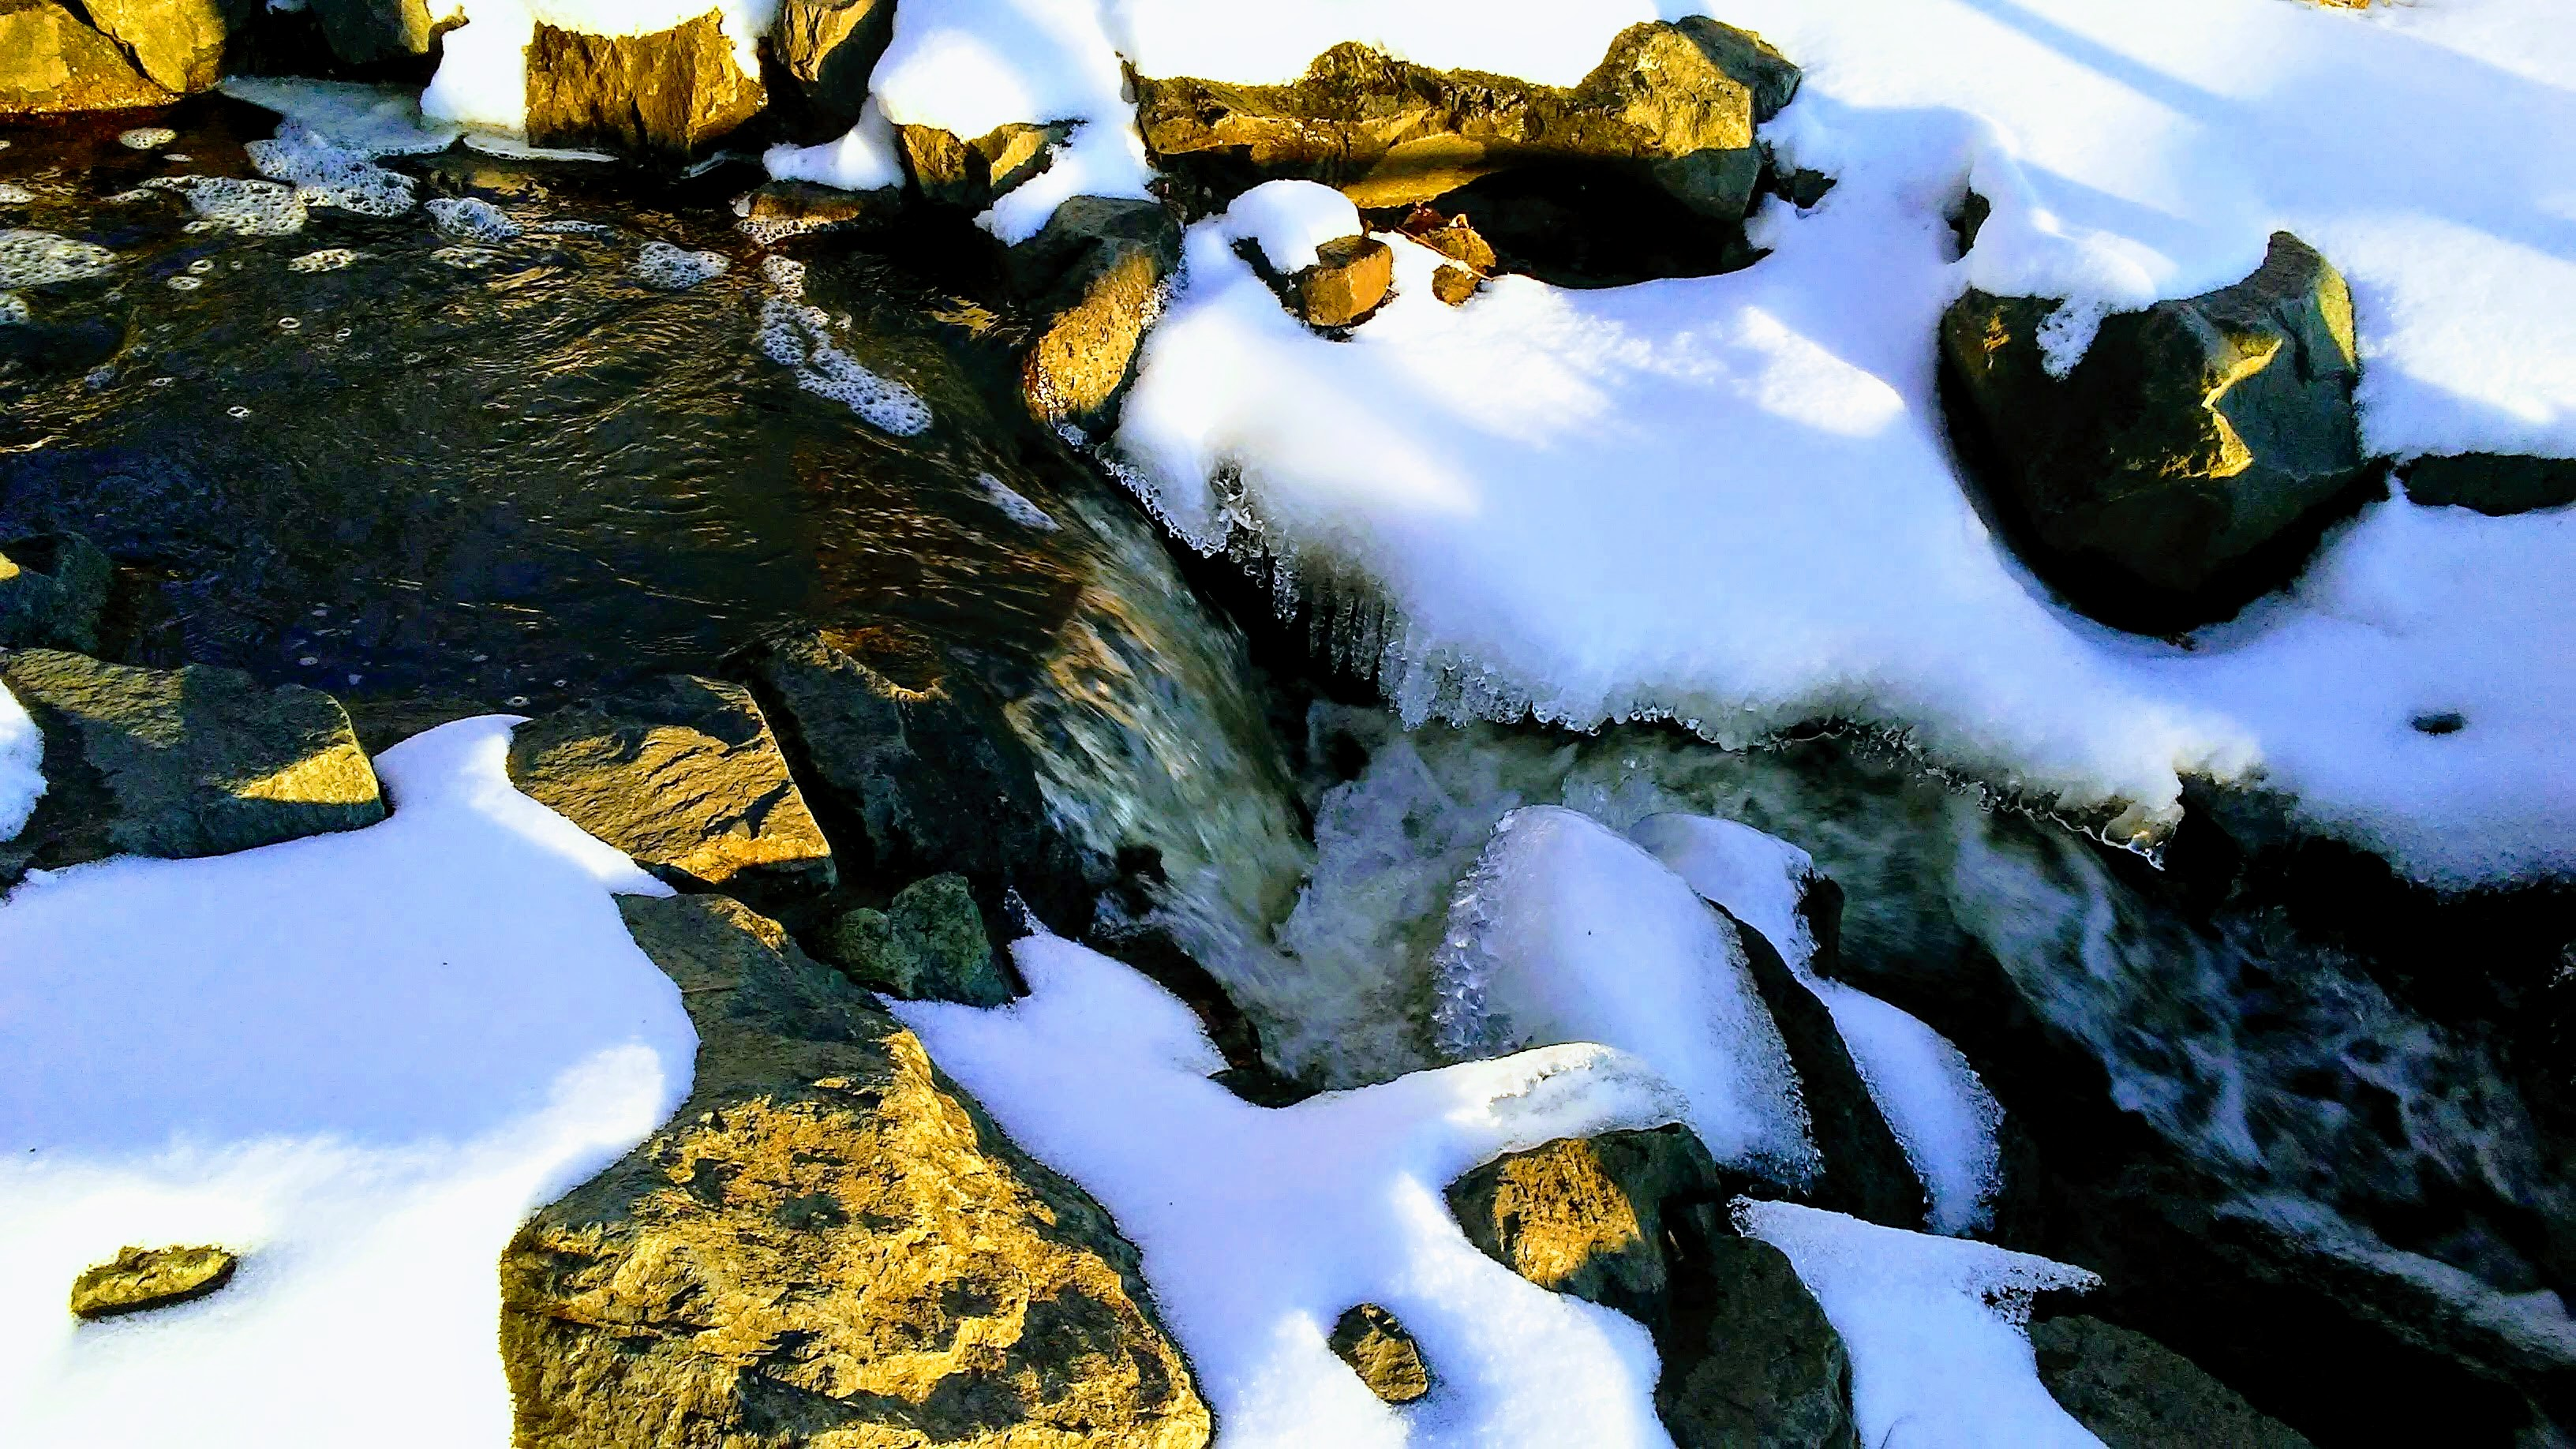 tan rocks, snow, water.